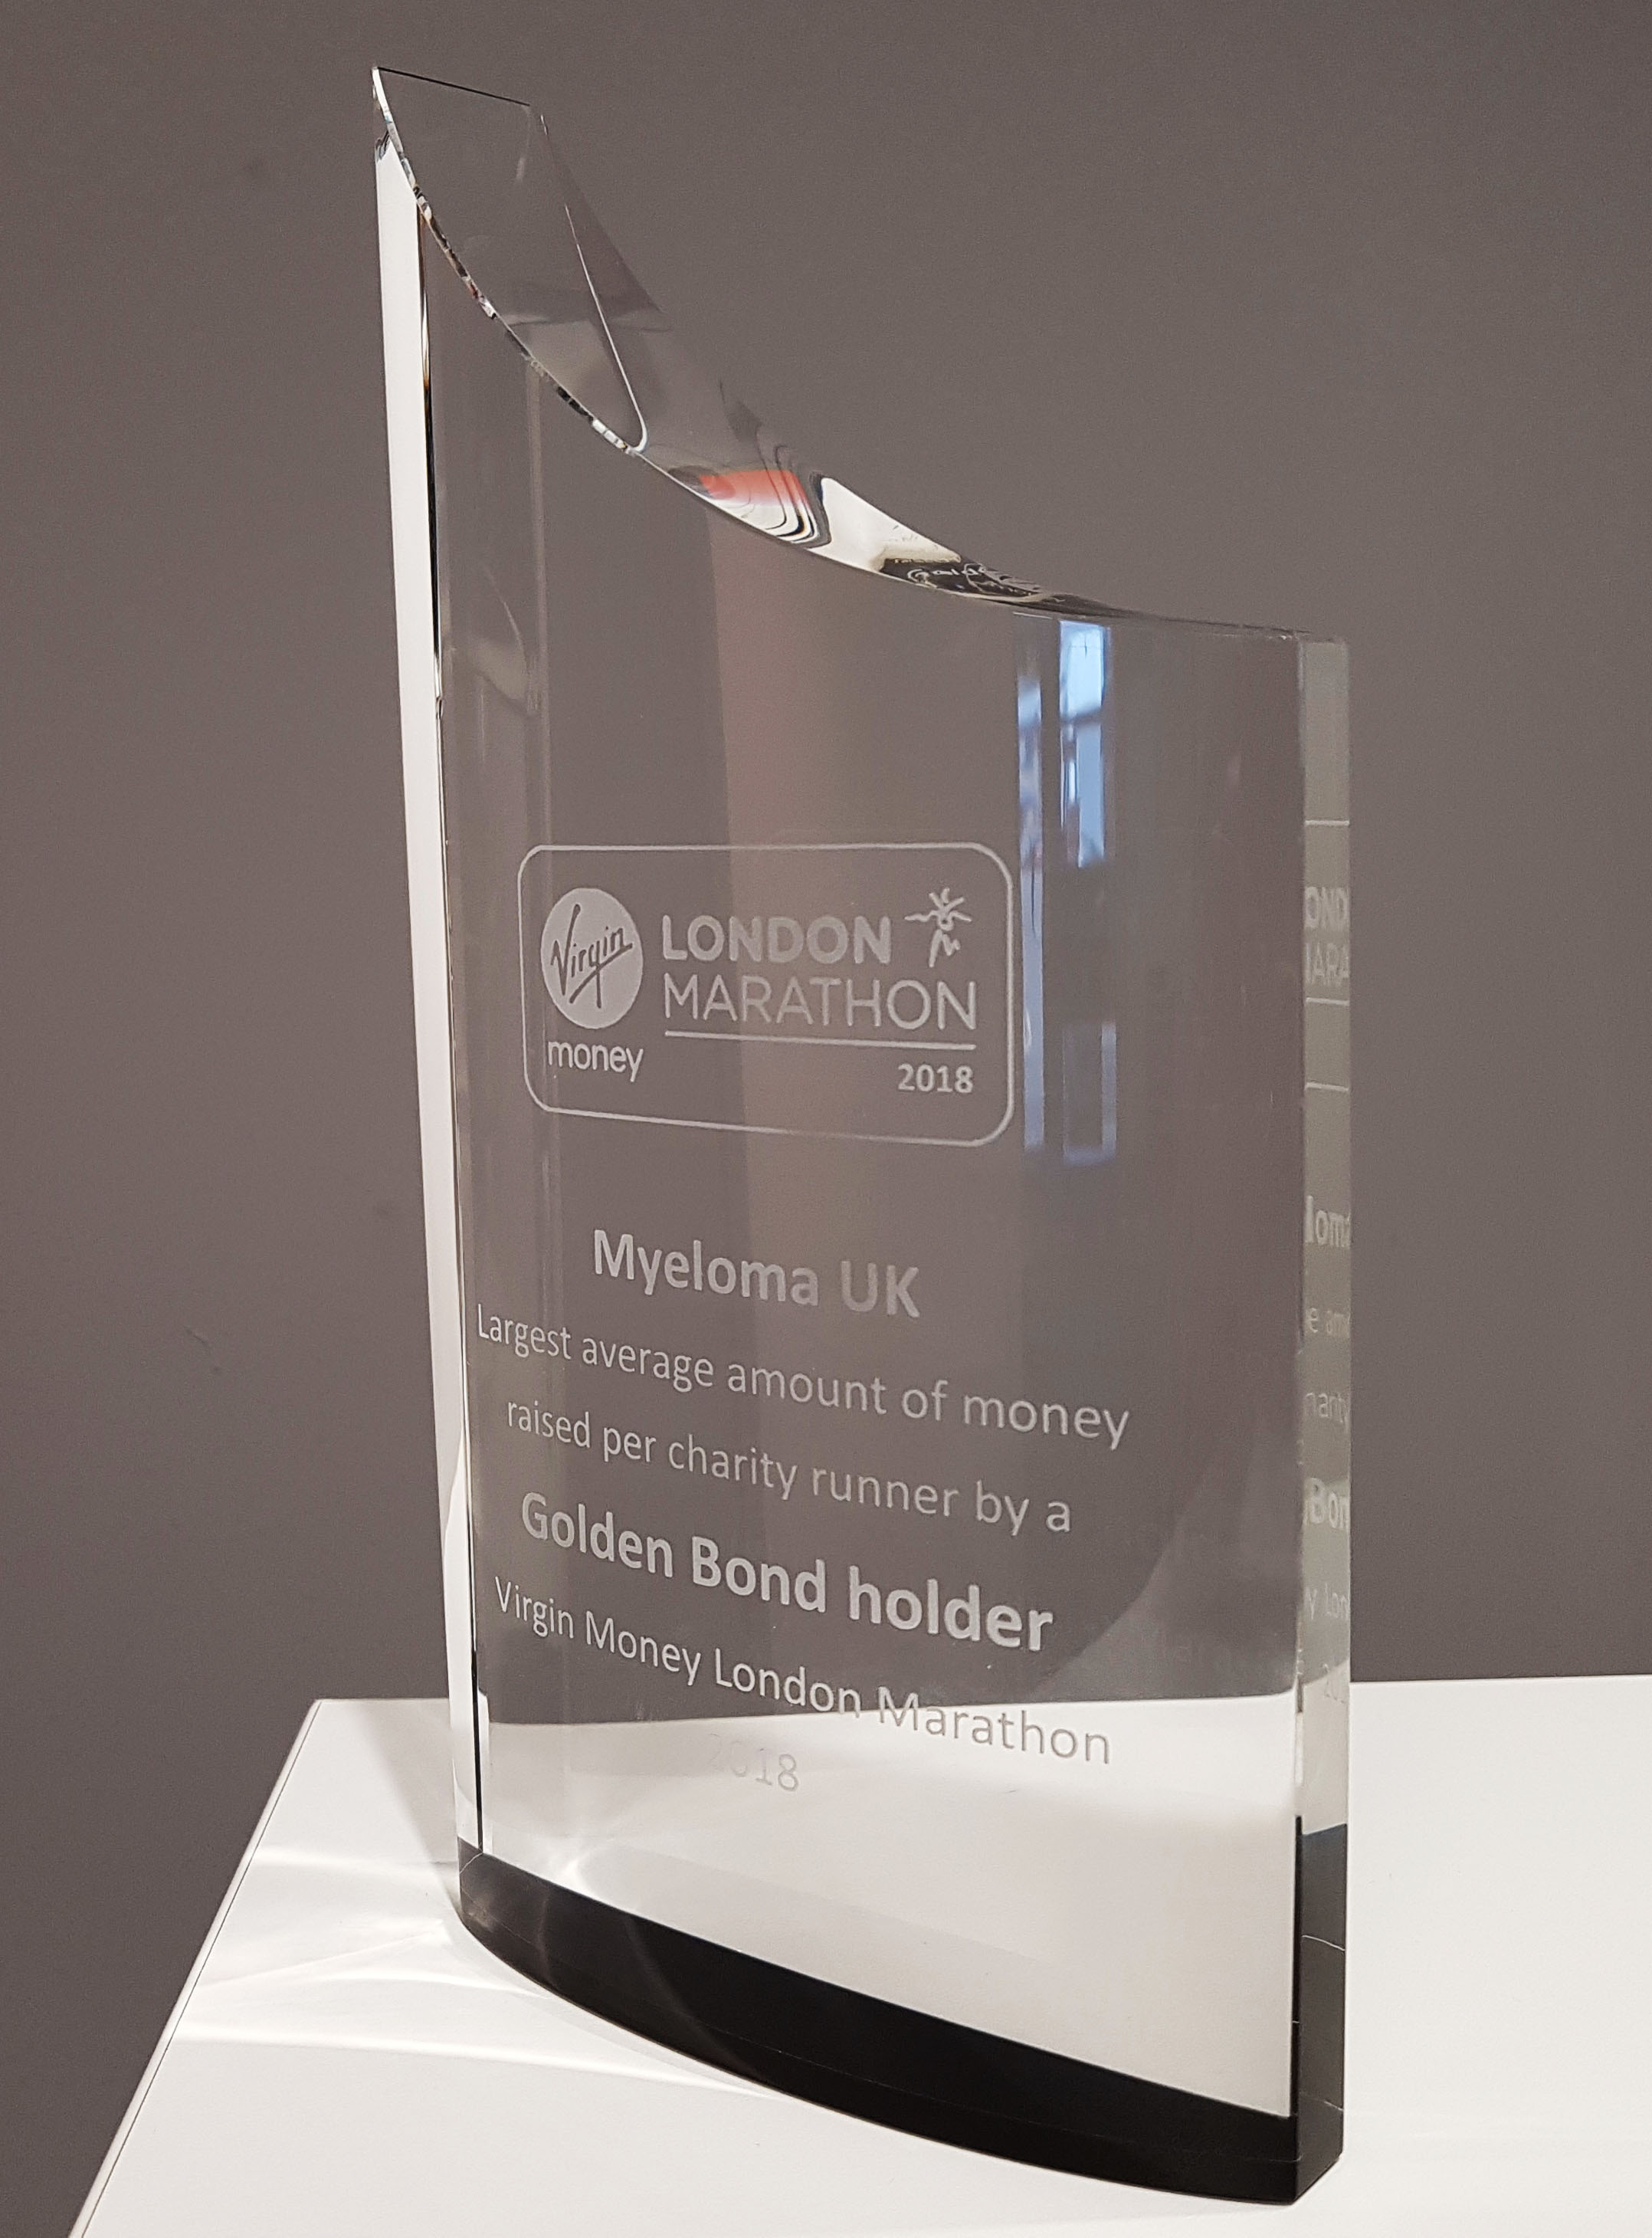 Myeloma UK London Marathon Gold Bond holder award